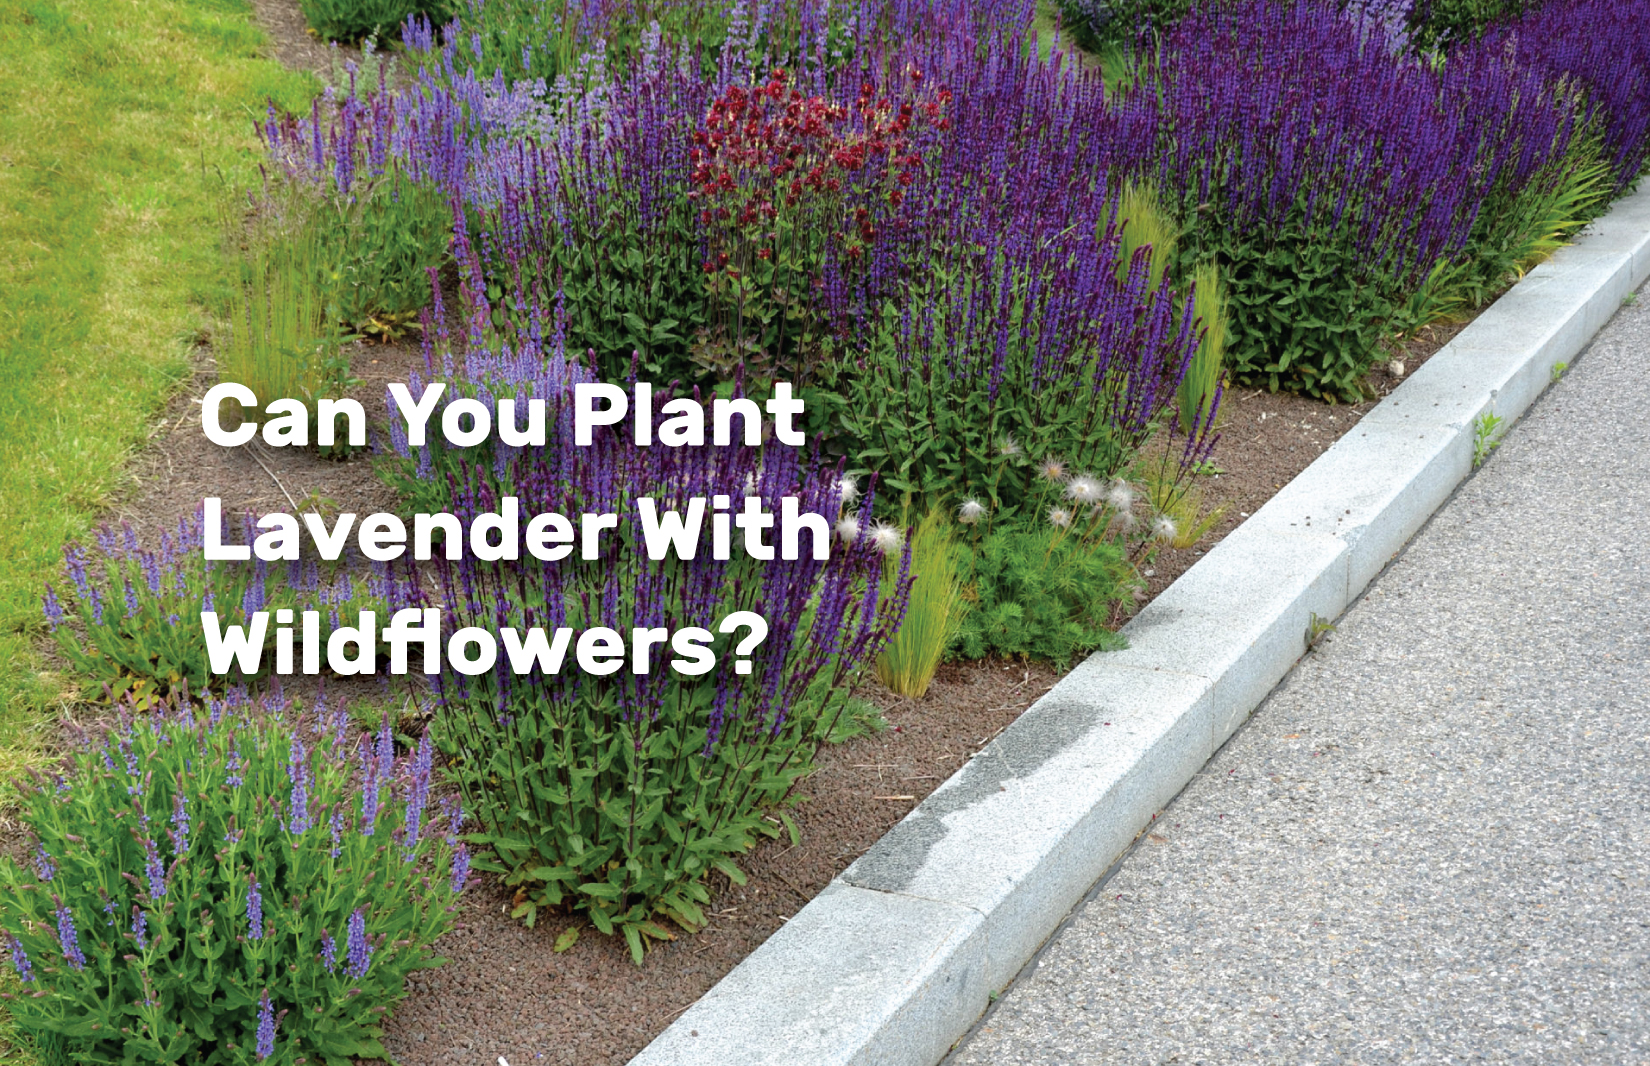 Can-You-Plant-Lavender-With-Wildflowers realestateke